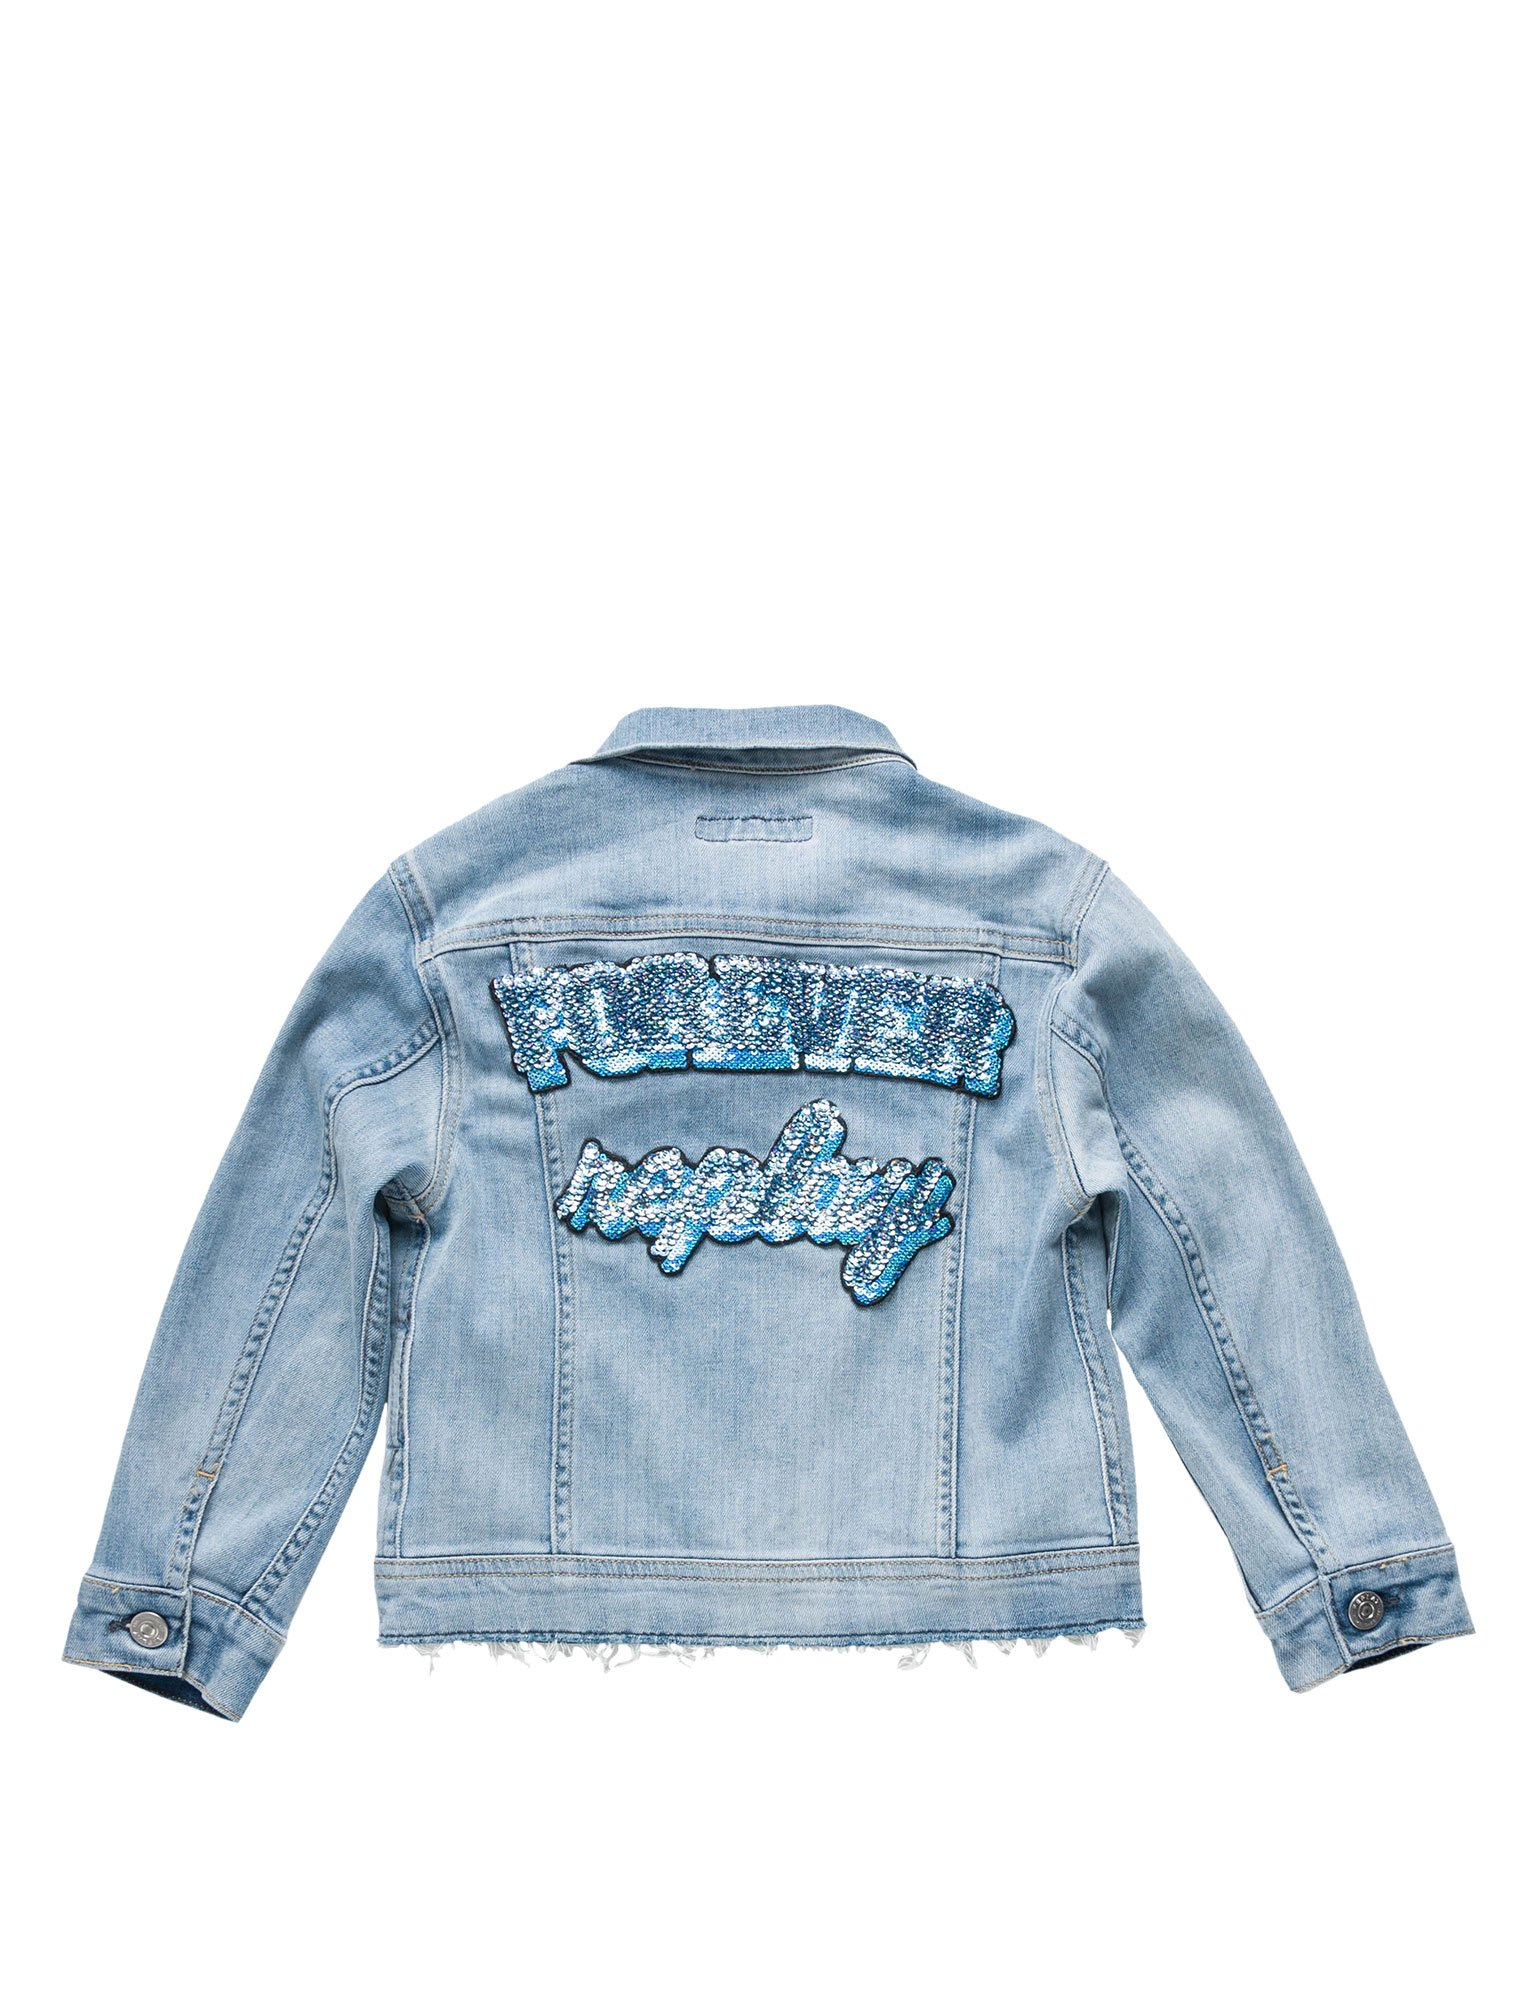 Replay Deep Comfort Girl's Jacket Blue in Size 8 Years by Replay (Image #2)